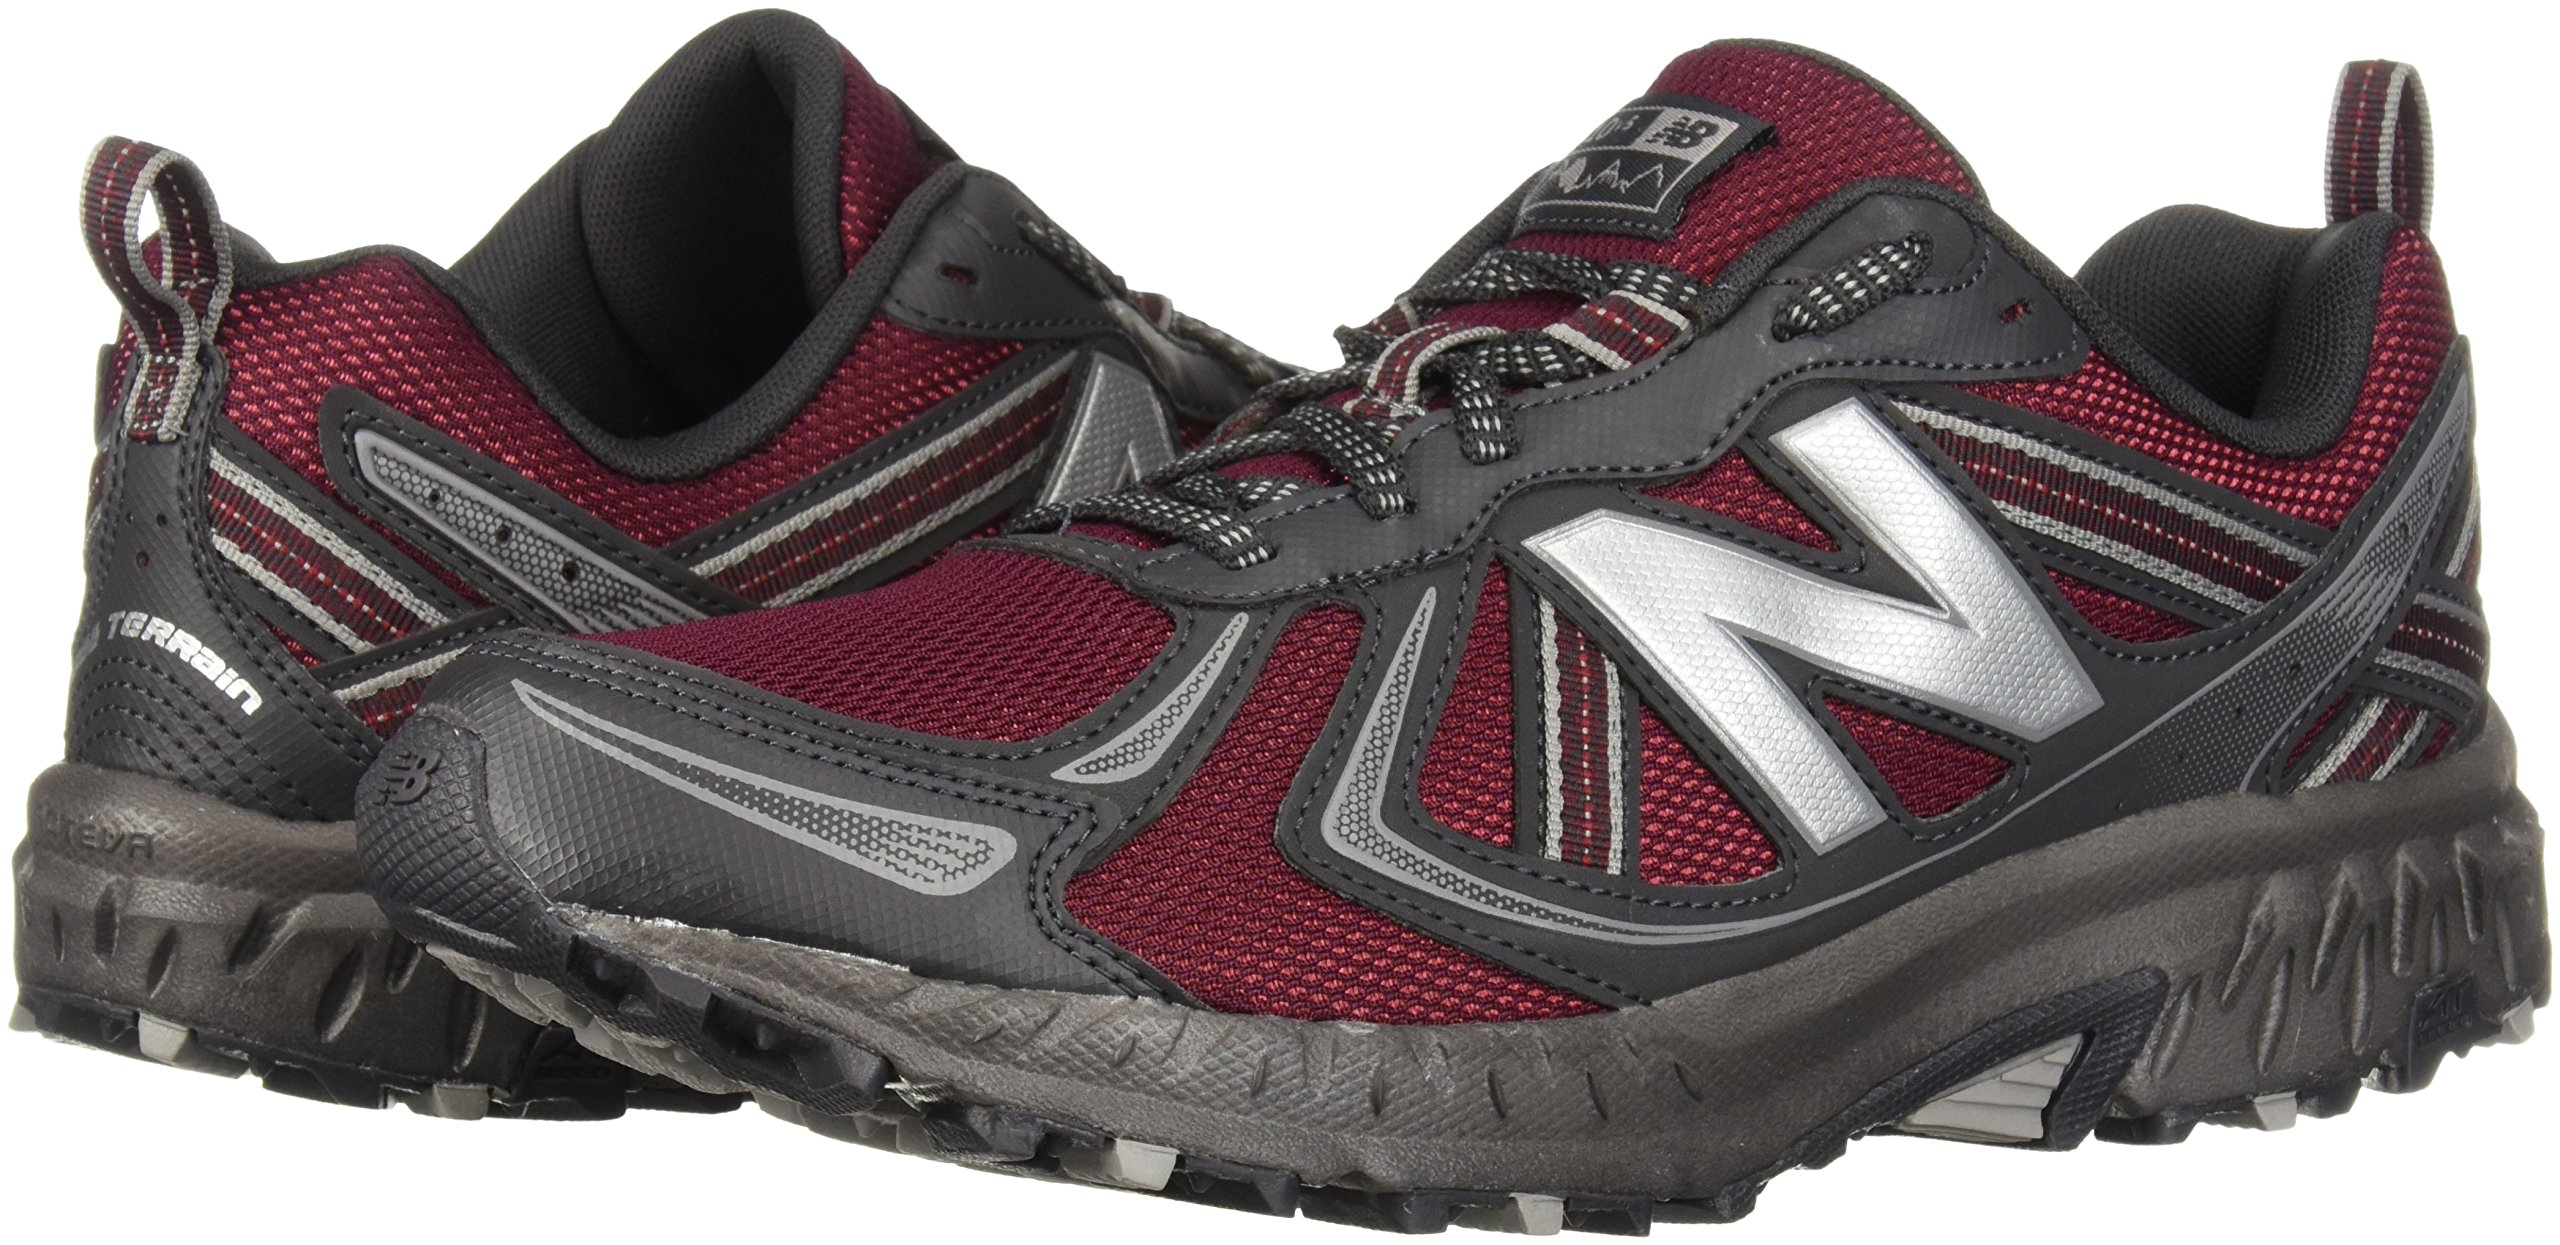 New Balance Men's MT410v5 Cushioning Trail Running Shoe, Oxblood, 7 D US by New Balance (Image #5)